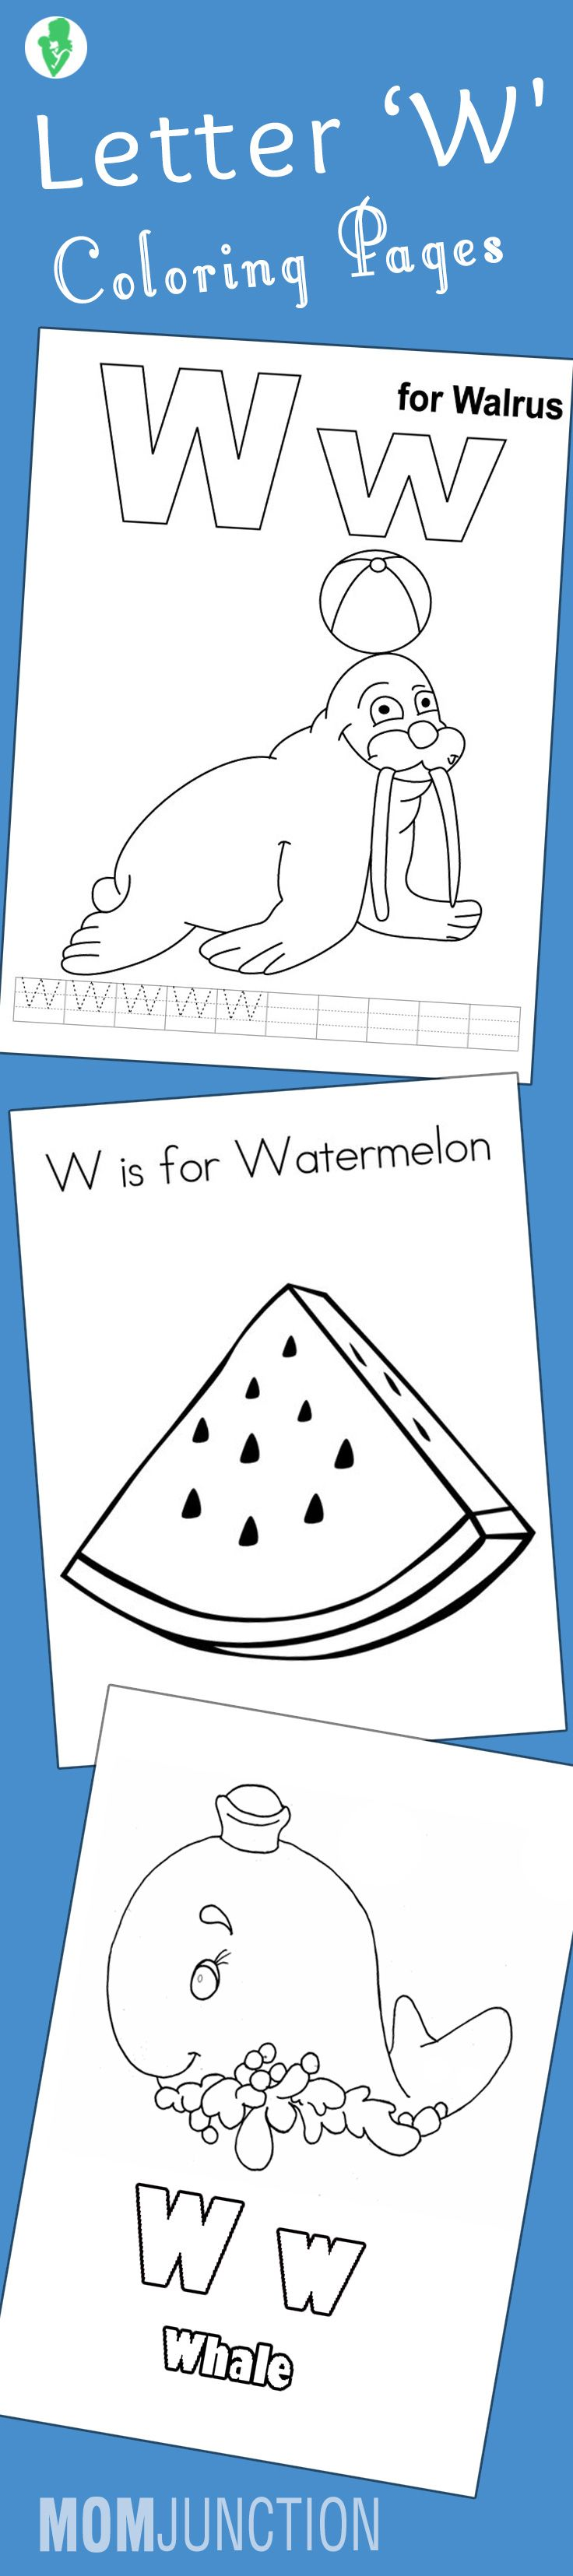 Top 10 Letter 'W' Coloring Pages Your Toddler Will Love To Learn & Color